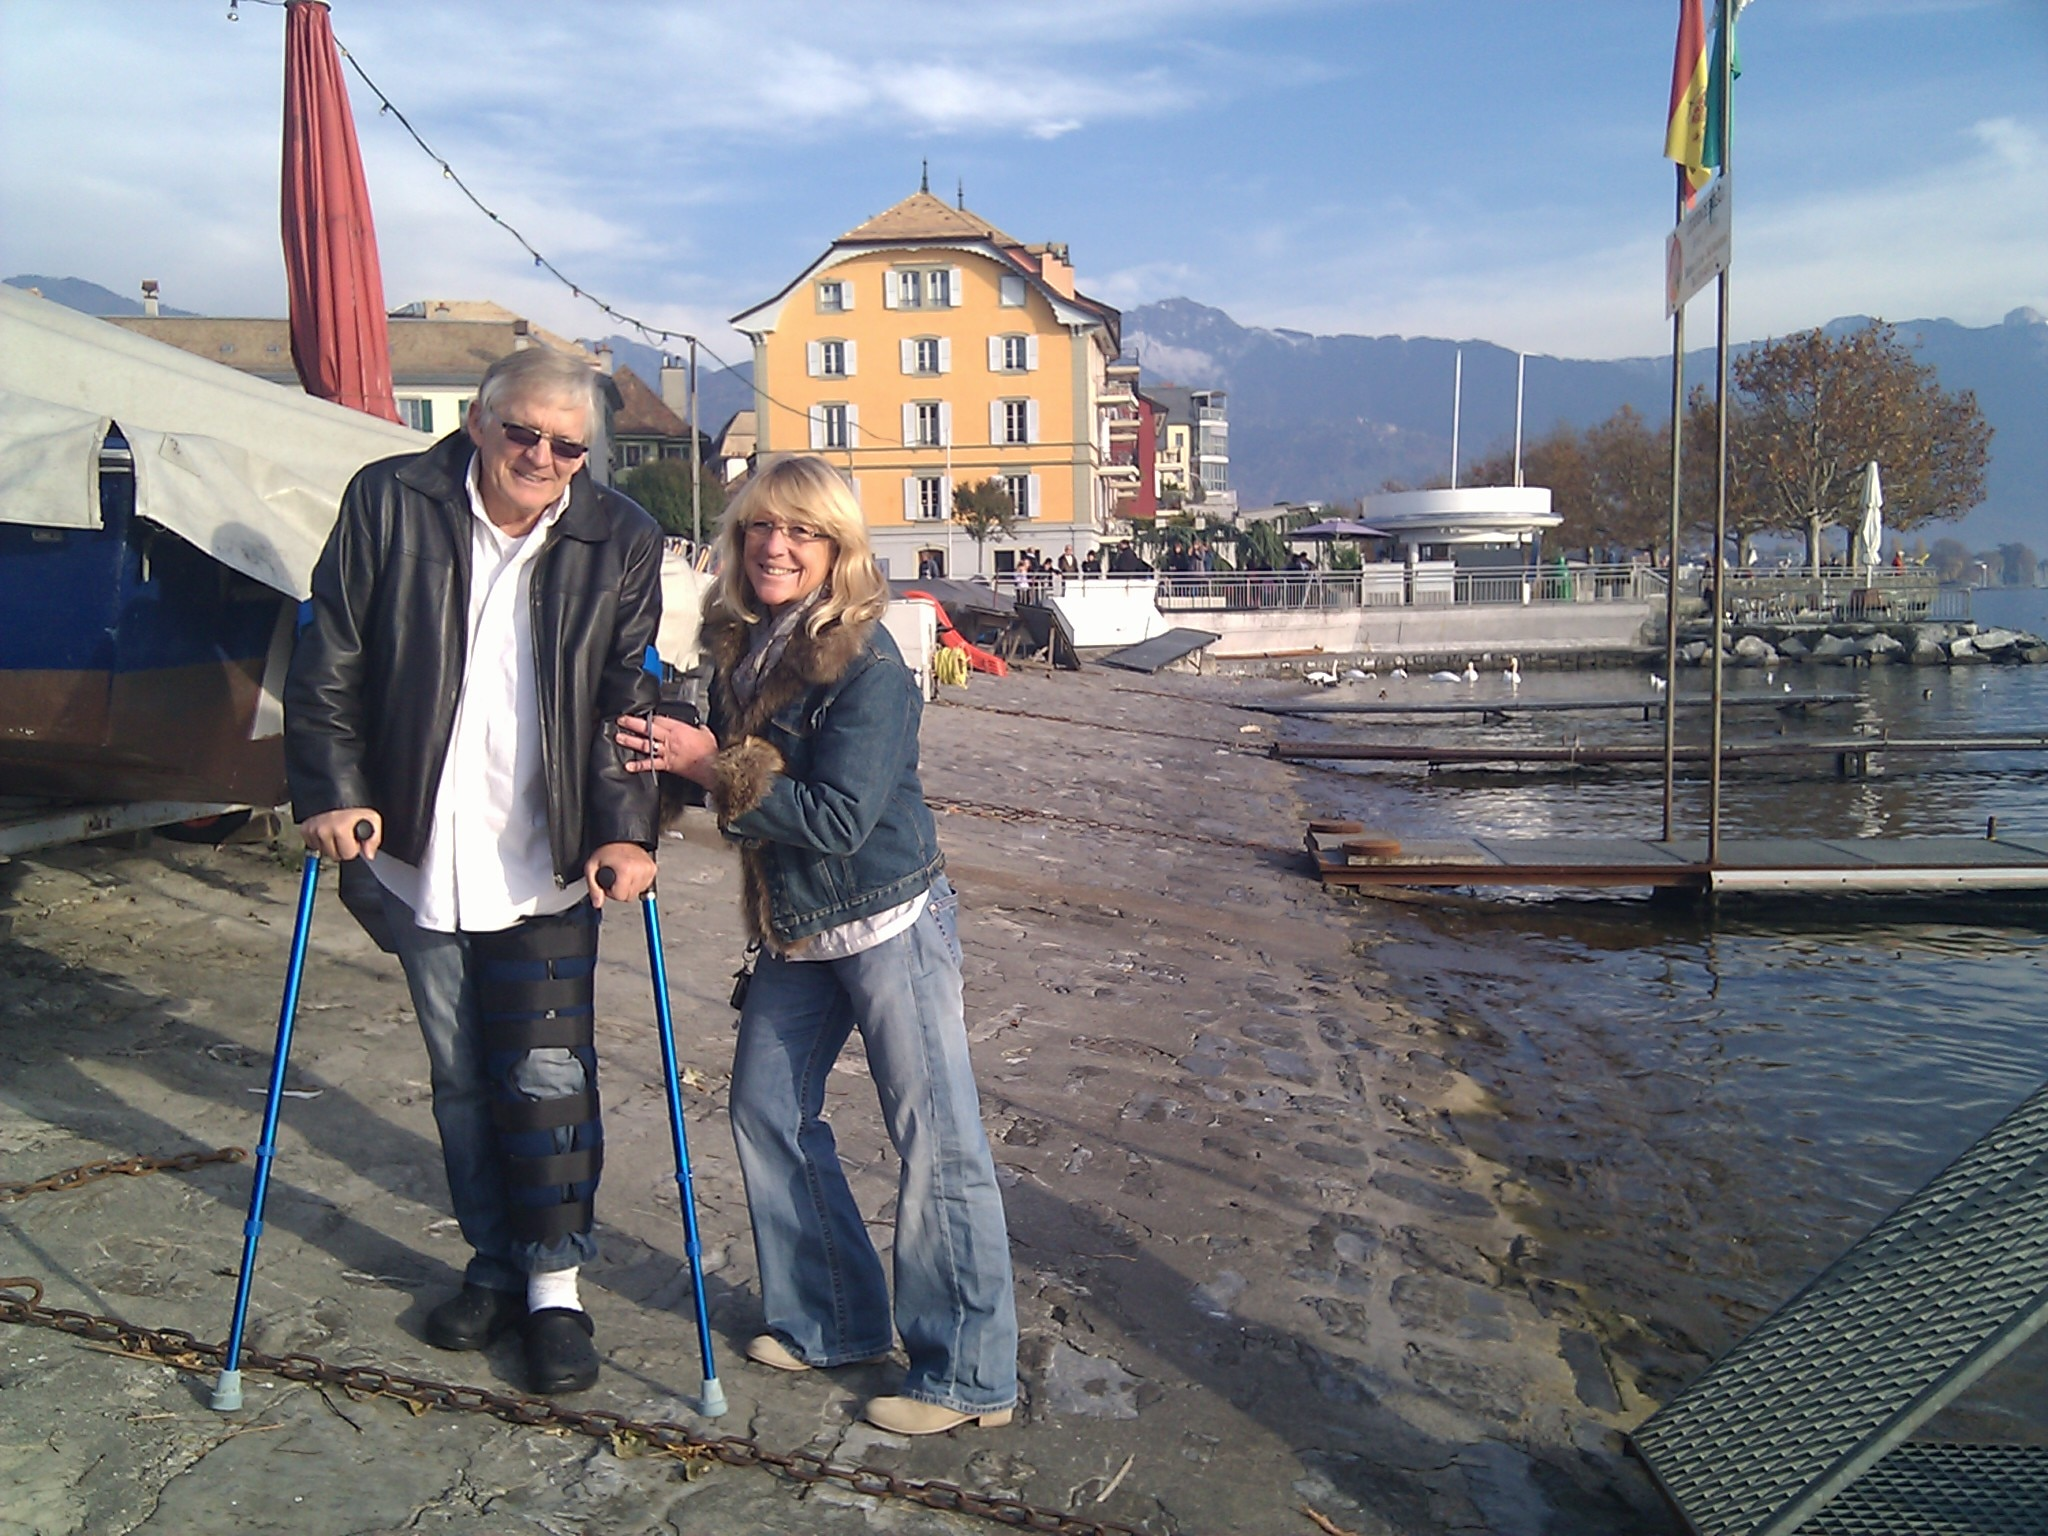 Larry and Martine Ware were planning to paddle Lake Geneva with me, but knee surgery got in the way. Here we are by the harbor in Vevey.